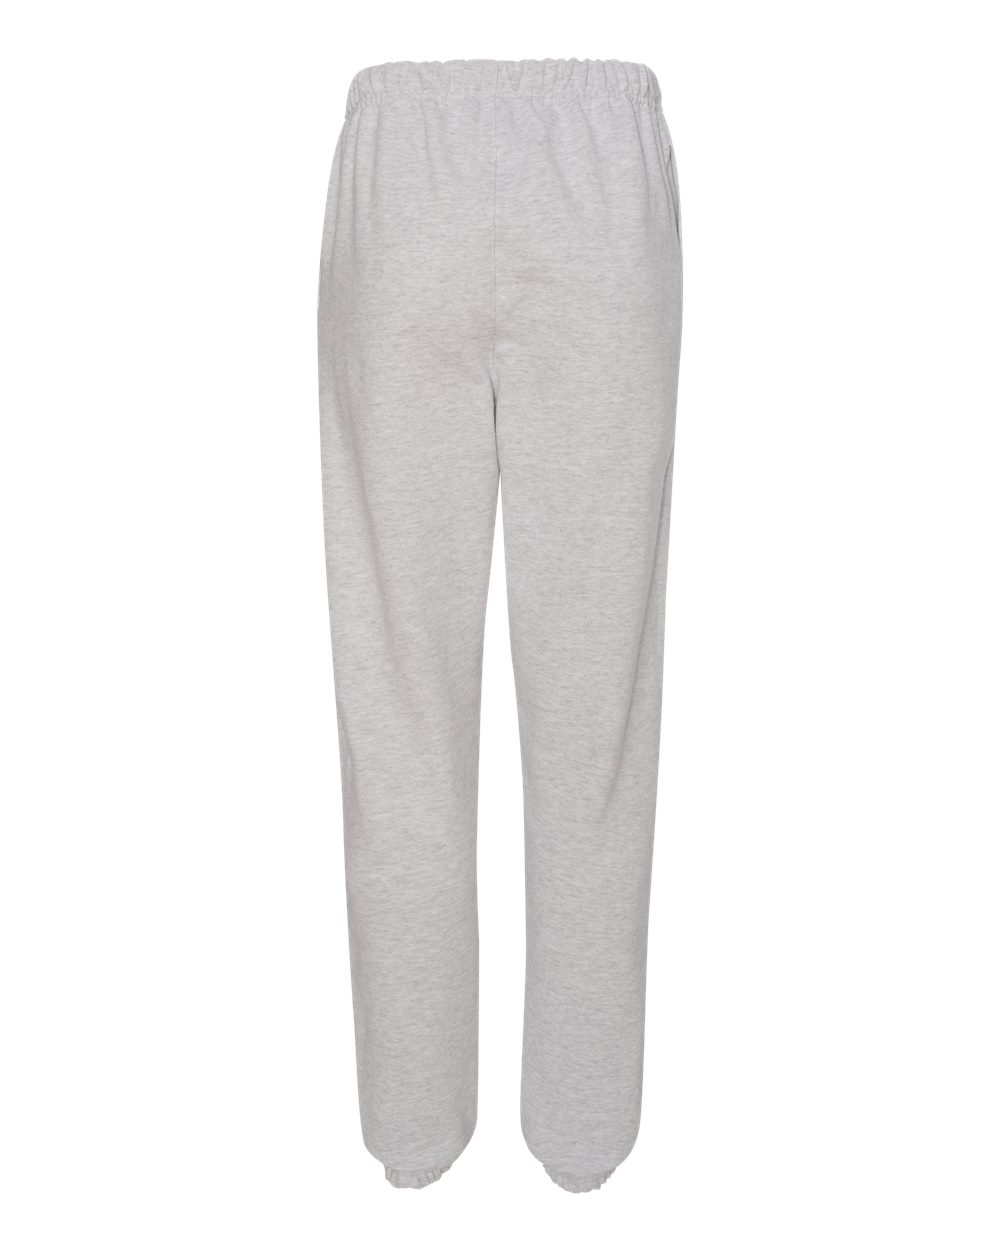 Champion-Mens-Reverse-Weave-Sweatpants-with-Pockets-RW10-up-to-3XL thumbnail 13